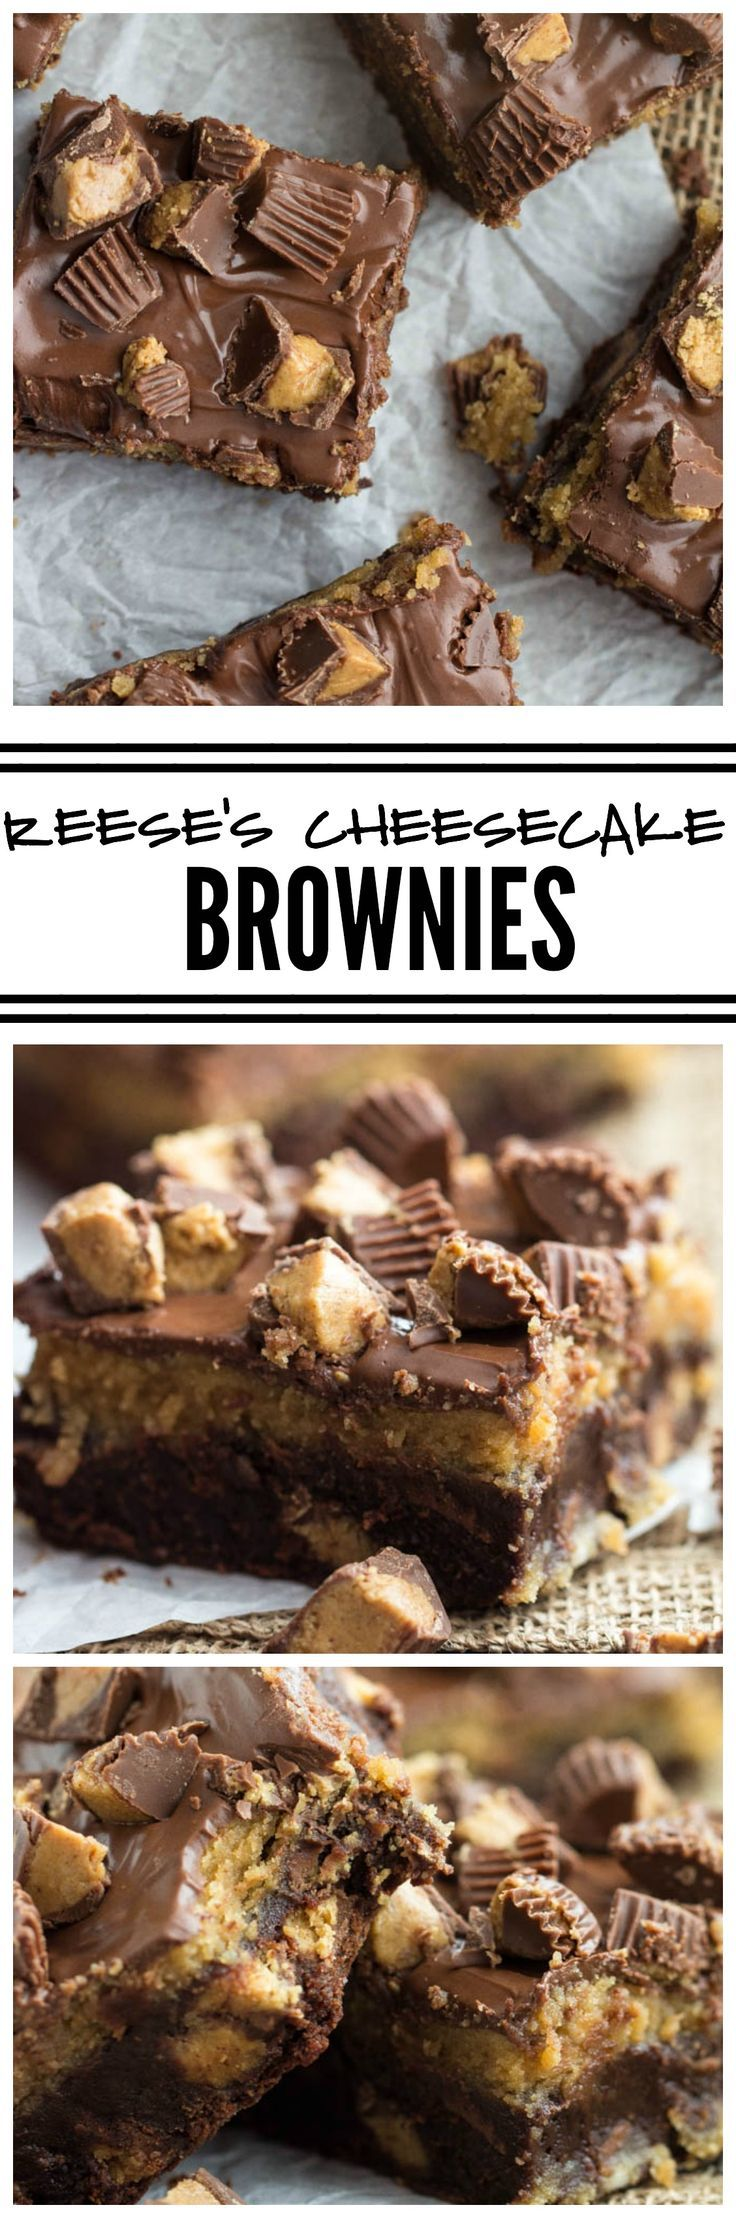 Reese's Cheesecake Brownies are for the ultimate Reese's lover! A fudgy brownie layer stuffed with peanut butter cups and a creamy peanut butter cheesecake layer! These are insanely good!